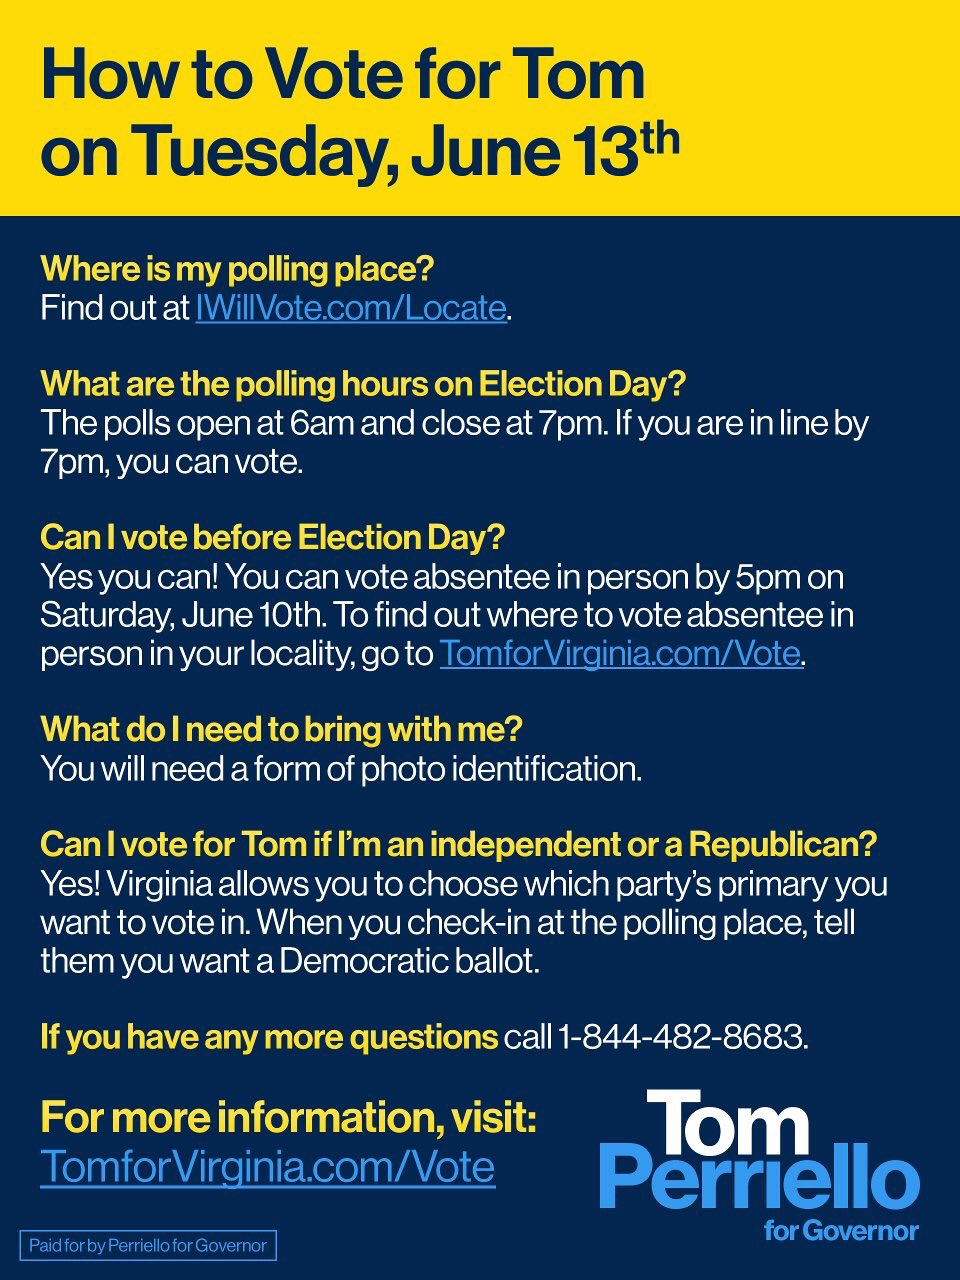 Our election is *tomorrow* June 13th! Do you have a plan to vote? https://t.co/MBId8iTIGk